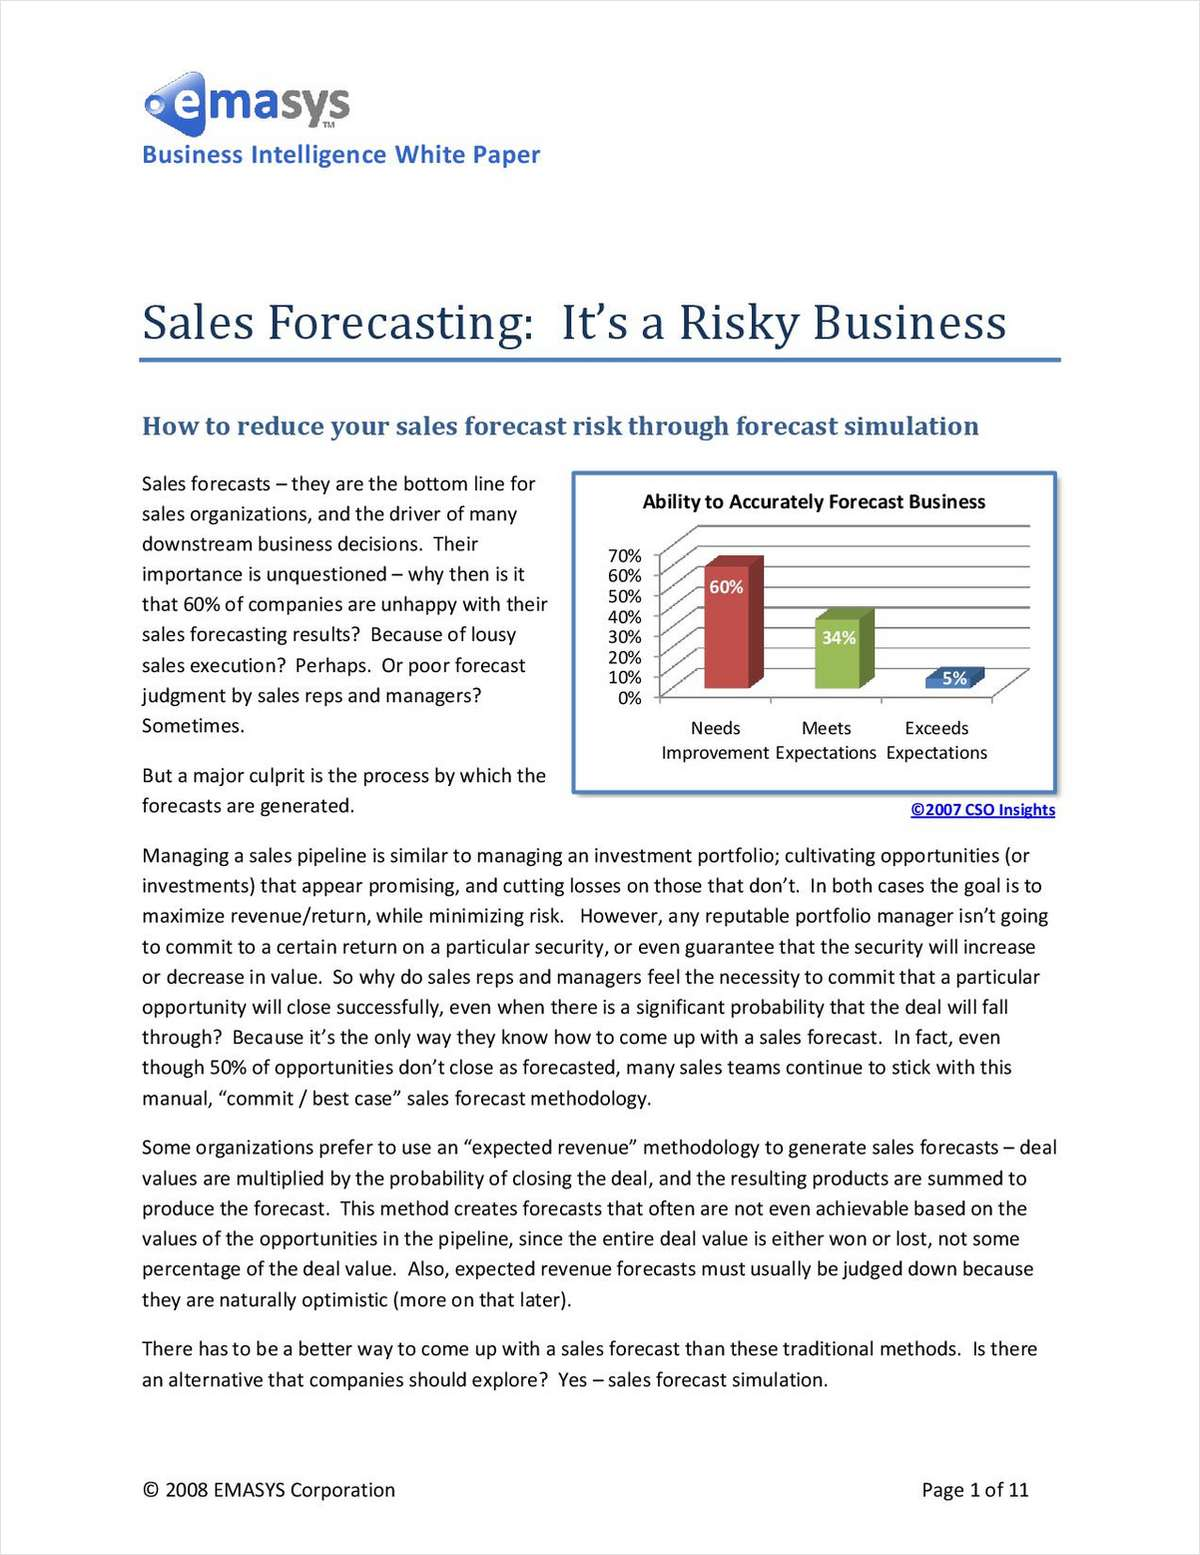 Sales Forecasting:  It's a Risky Business